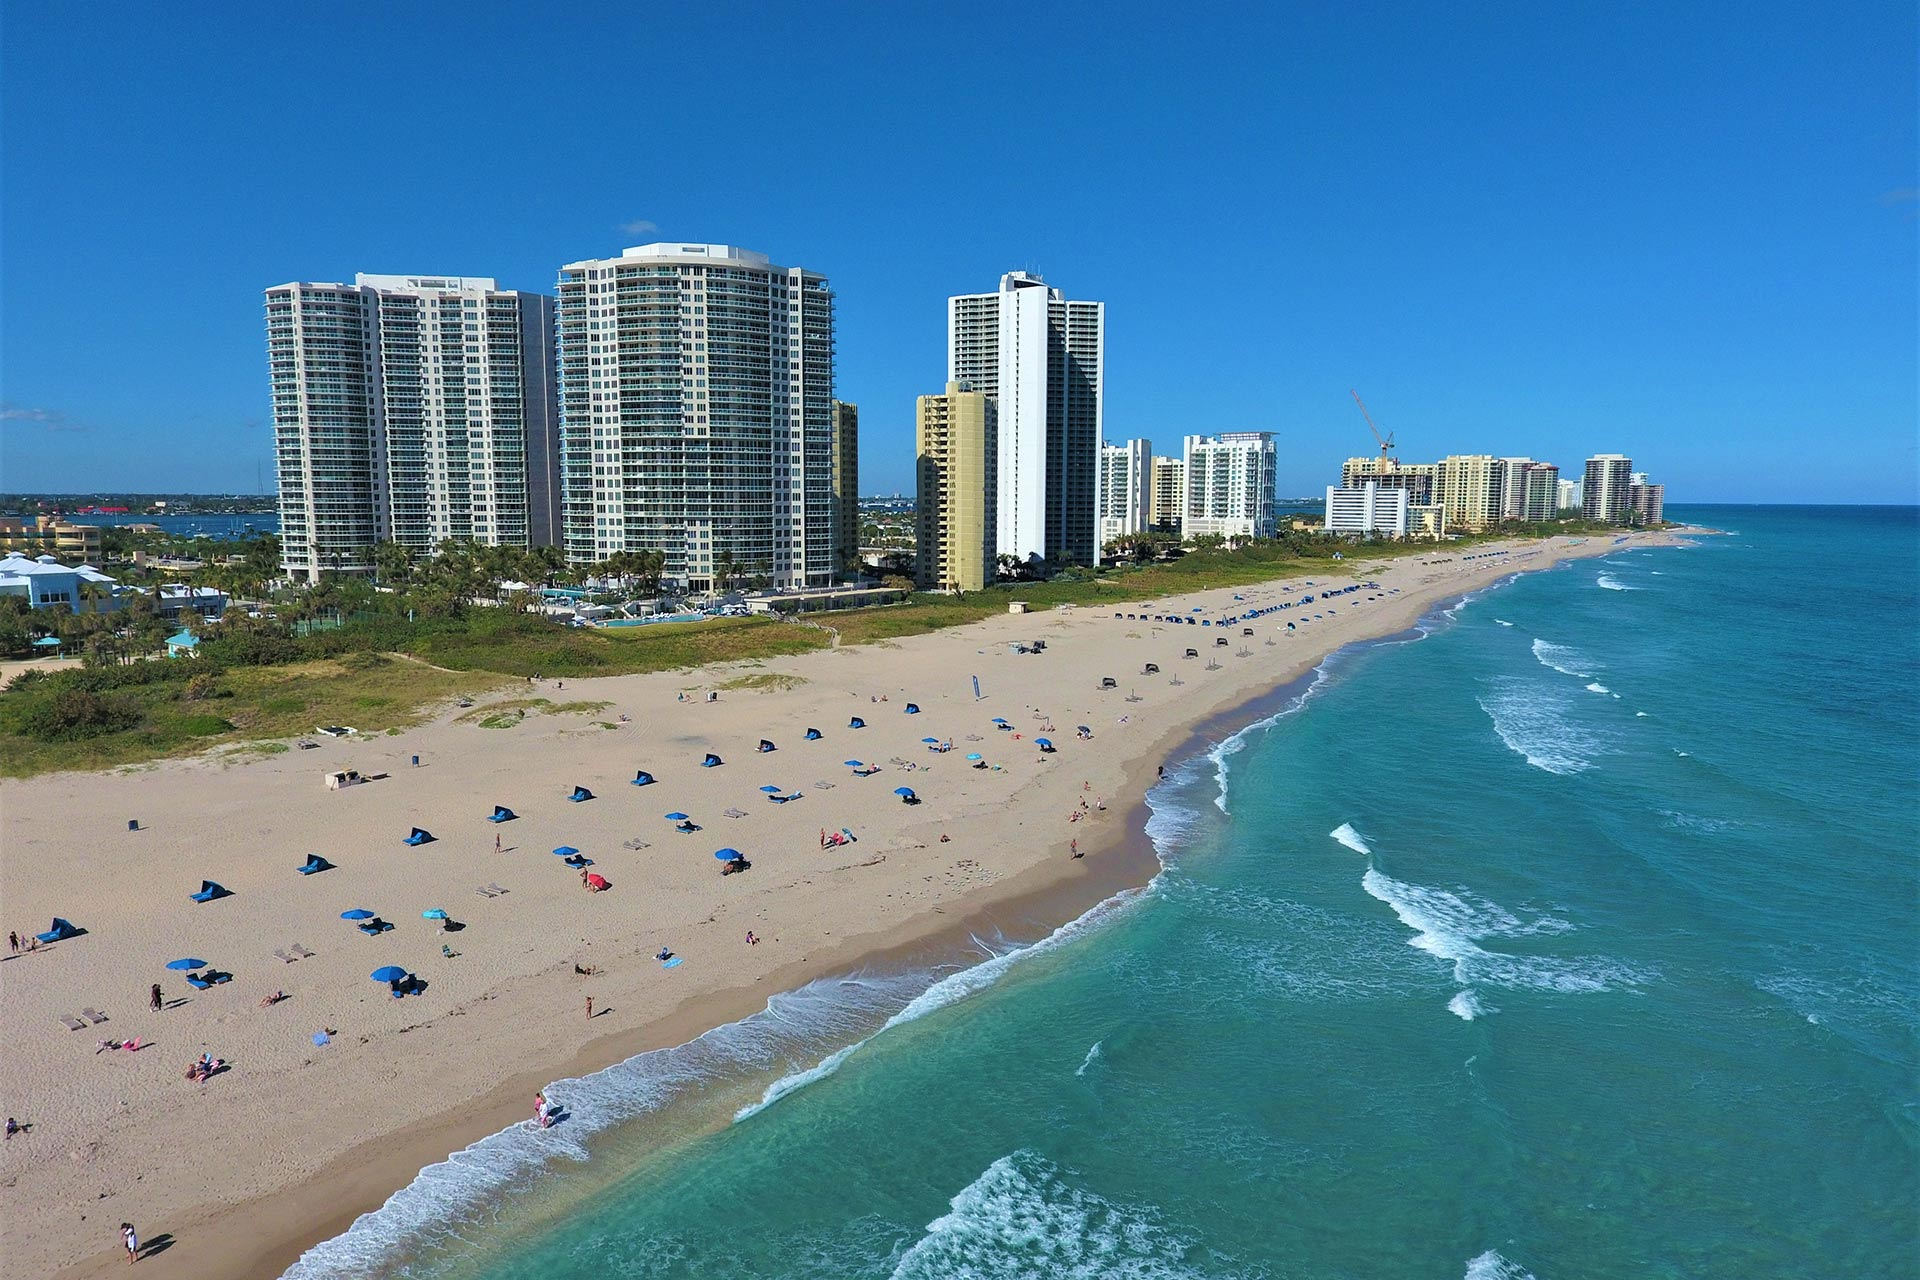 West Palm Beach, Florida; Photo Courtesy of Victor Setting/Shutterstock.com